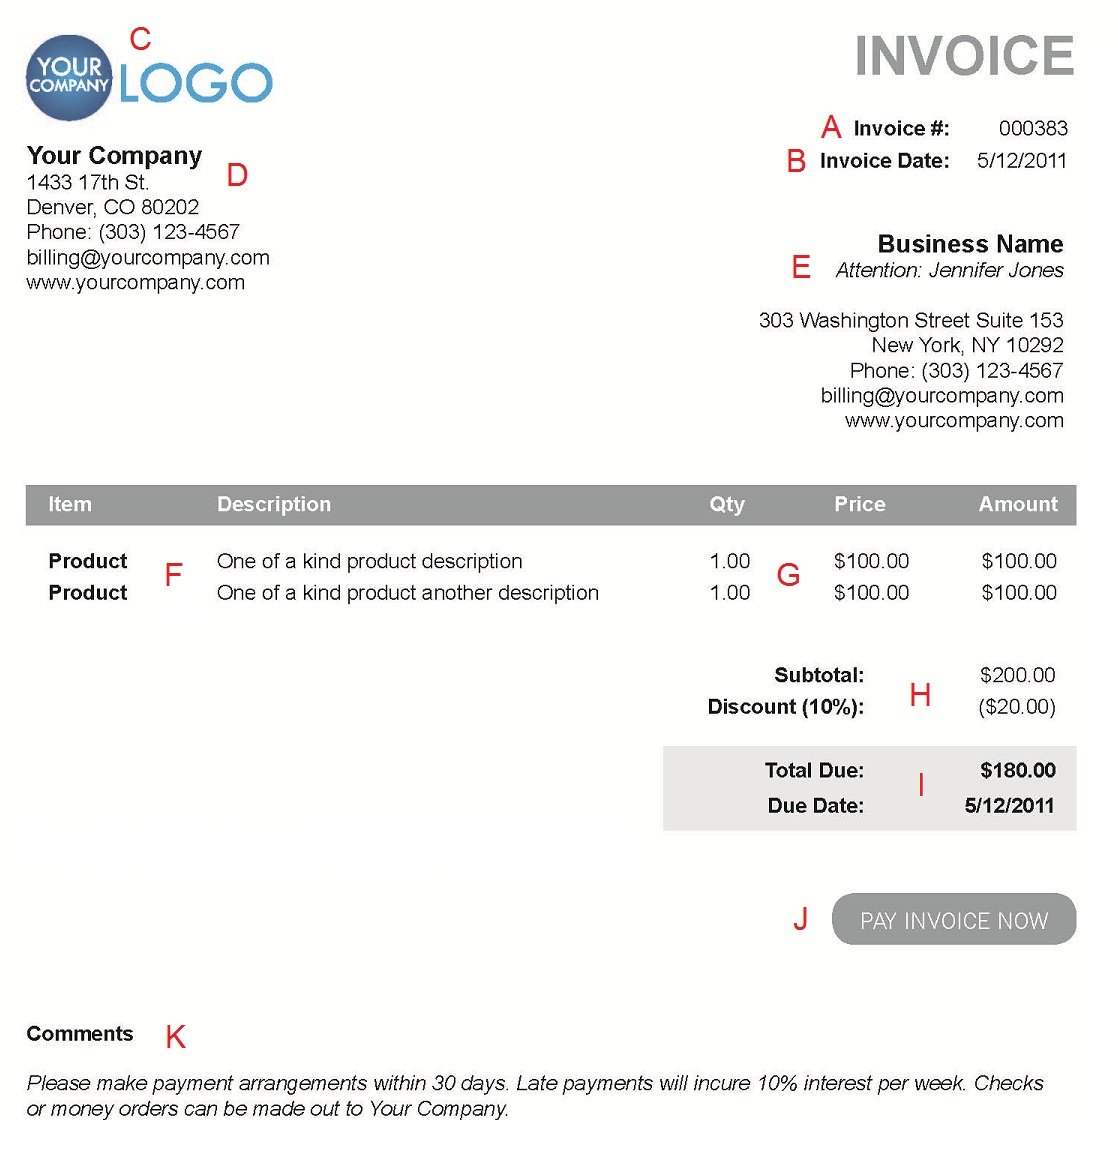 Theologygeekblogus  Unusual The  Different Sections Of An Electronic Payment Invoice With Goodlooking A  With Awesome Receipt Printer Price Also Tenant Receipt Of Payment In Addition Acknowledgement Receipt Of Payment Template And Mac Mail Receipt As Well As Receipt Letter Example Additionally Vehicle Tax Receipt From Paysimplecom With Theologygeekblogus  Goodlooking The  Different Sections Of An Electronic Payment Invoice With Awesome A  And Unusual Receipt Printer Price Also Tenant Receipt Of Payment In Addition Acknowledgement Receipt Of Payment Template From Paysimplecom